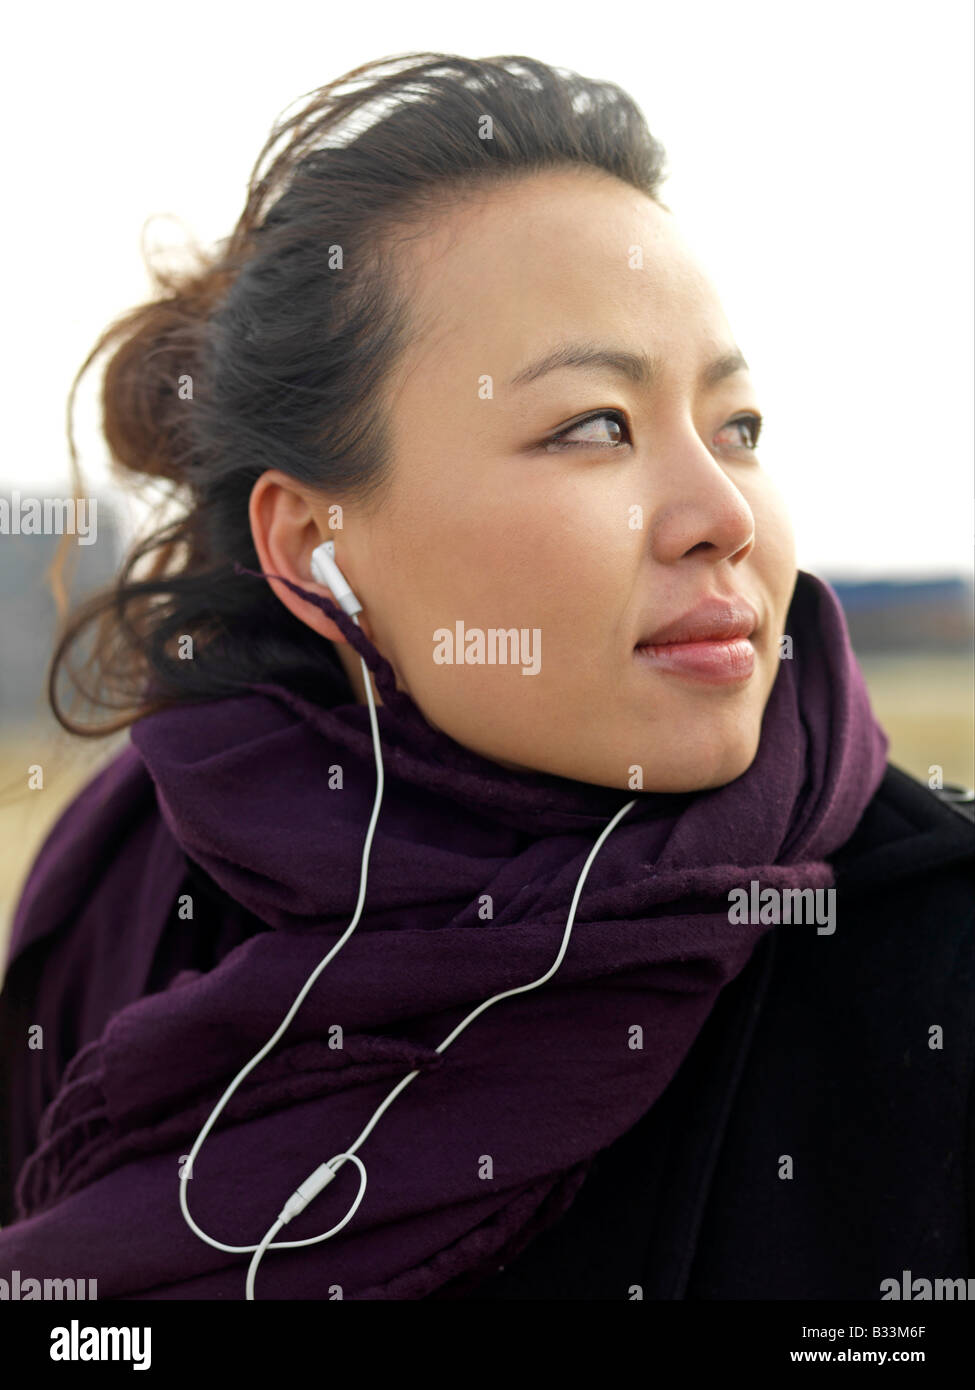 A young woman with wind swept looks away while listening to music. - Stock Image